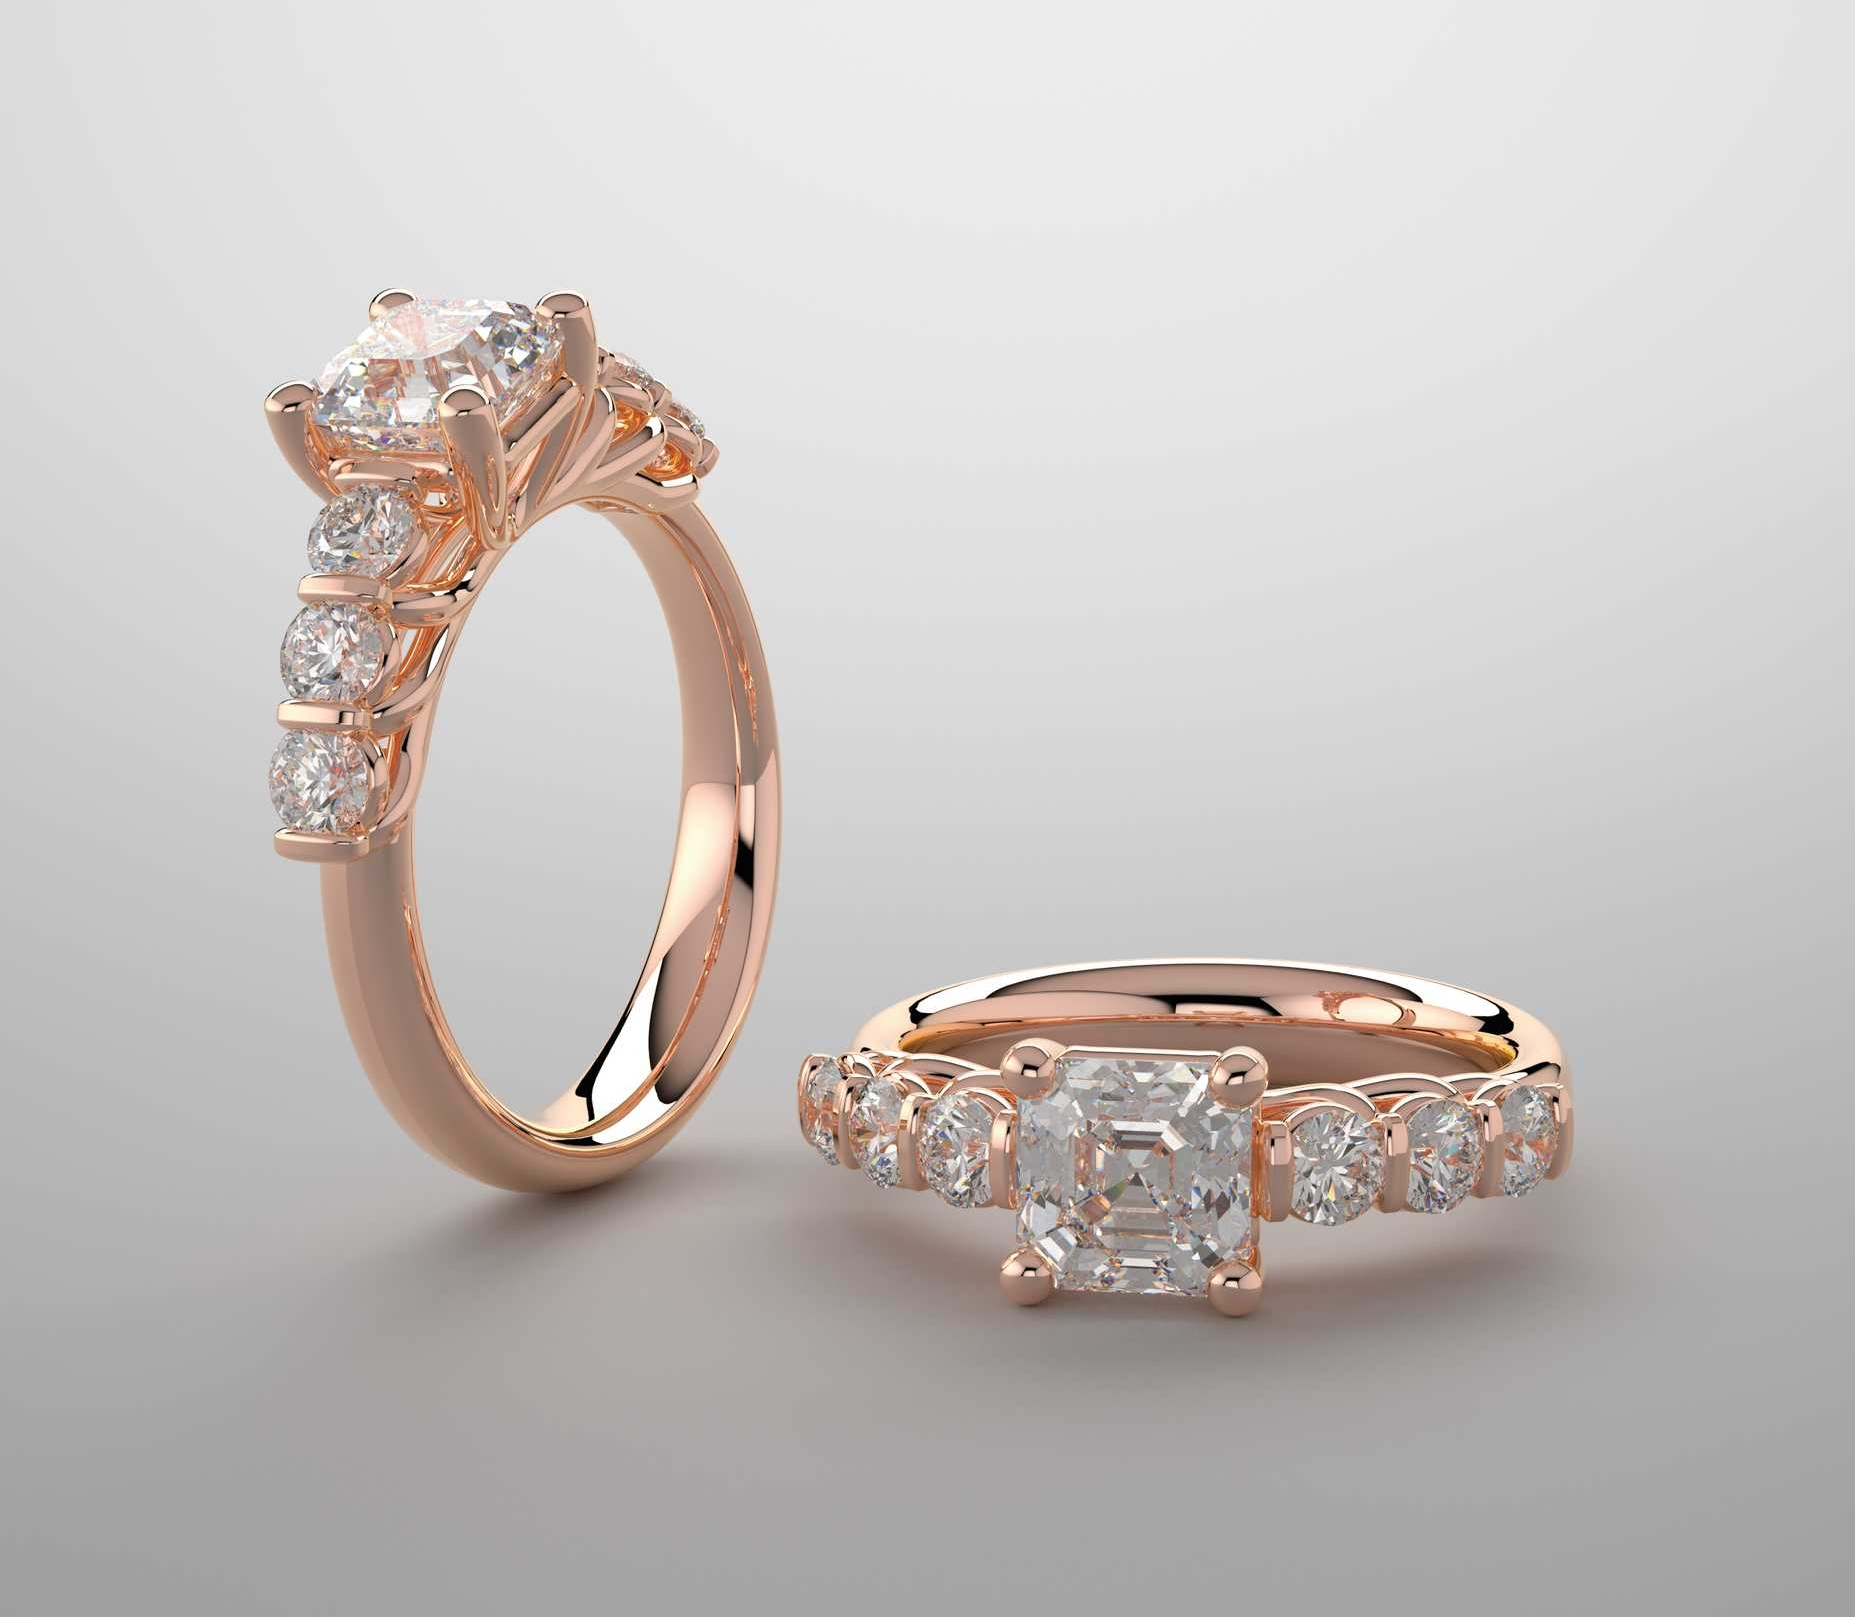 Engagement Rings - Made for you in Colorado - Engagement Rings